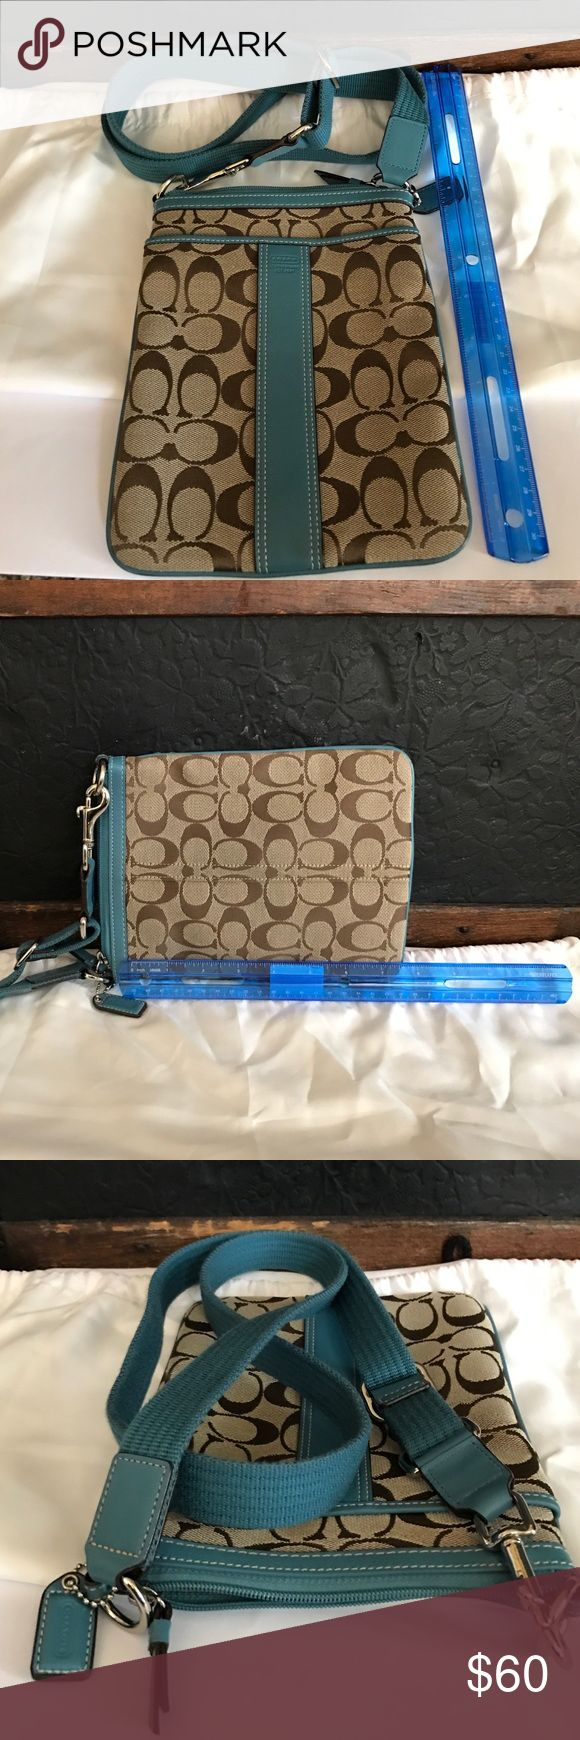 💯 Authentic Coach Swingpack in Signature Fabric This is a 💯 Authentic Coach Crossbody Swingpack in Signature Fabric. Never used, received as a gift. In pristine condition, with an approximate 43in long strap (when unhooked and laid flat.) I've included a 12in ruler in the pictures to show measurements. Thank you! Coach Bags Crossbody Bags